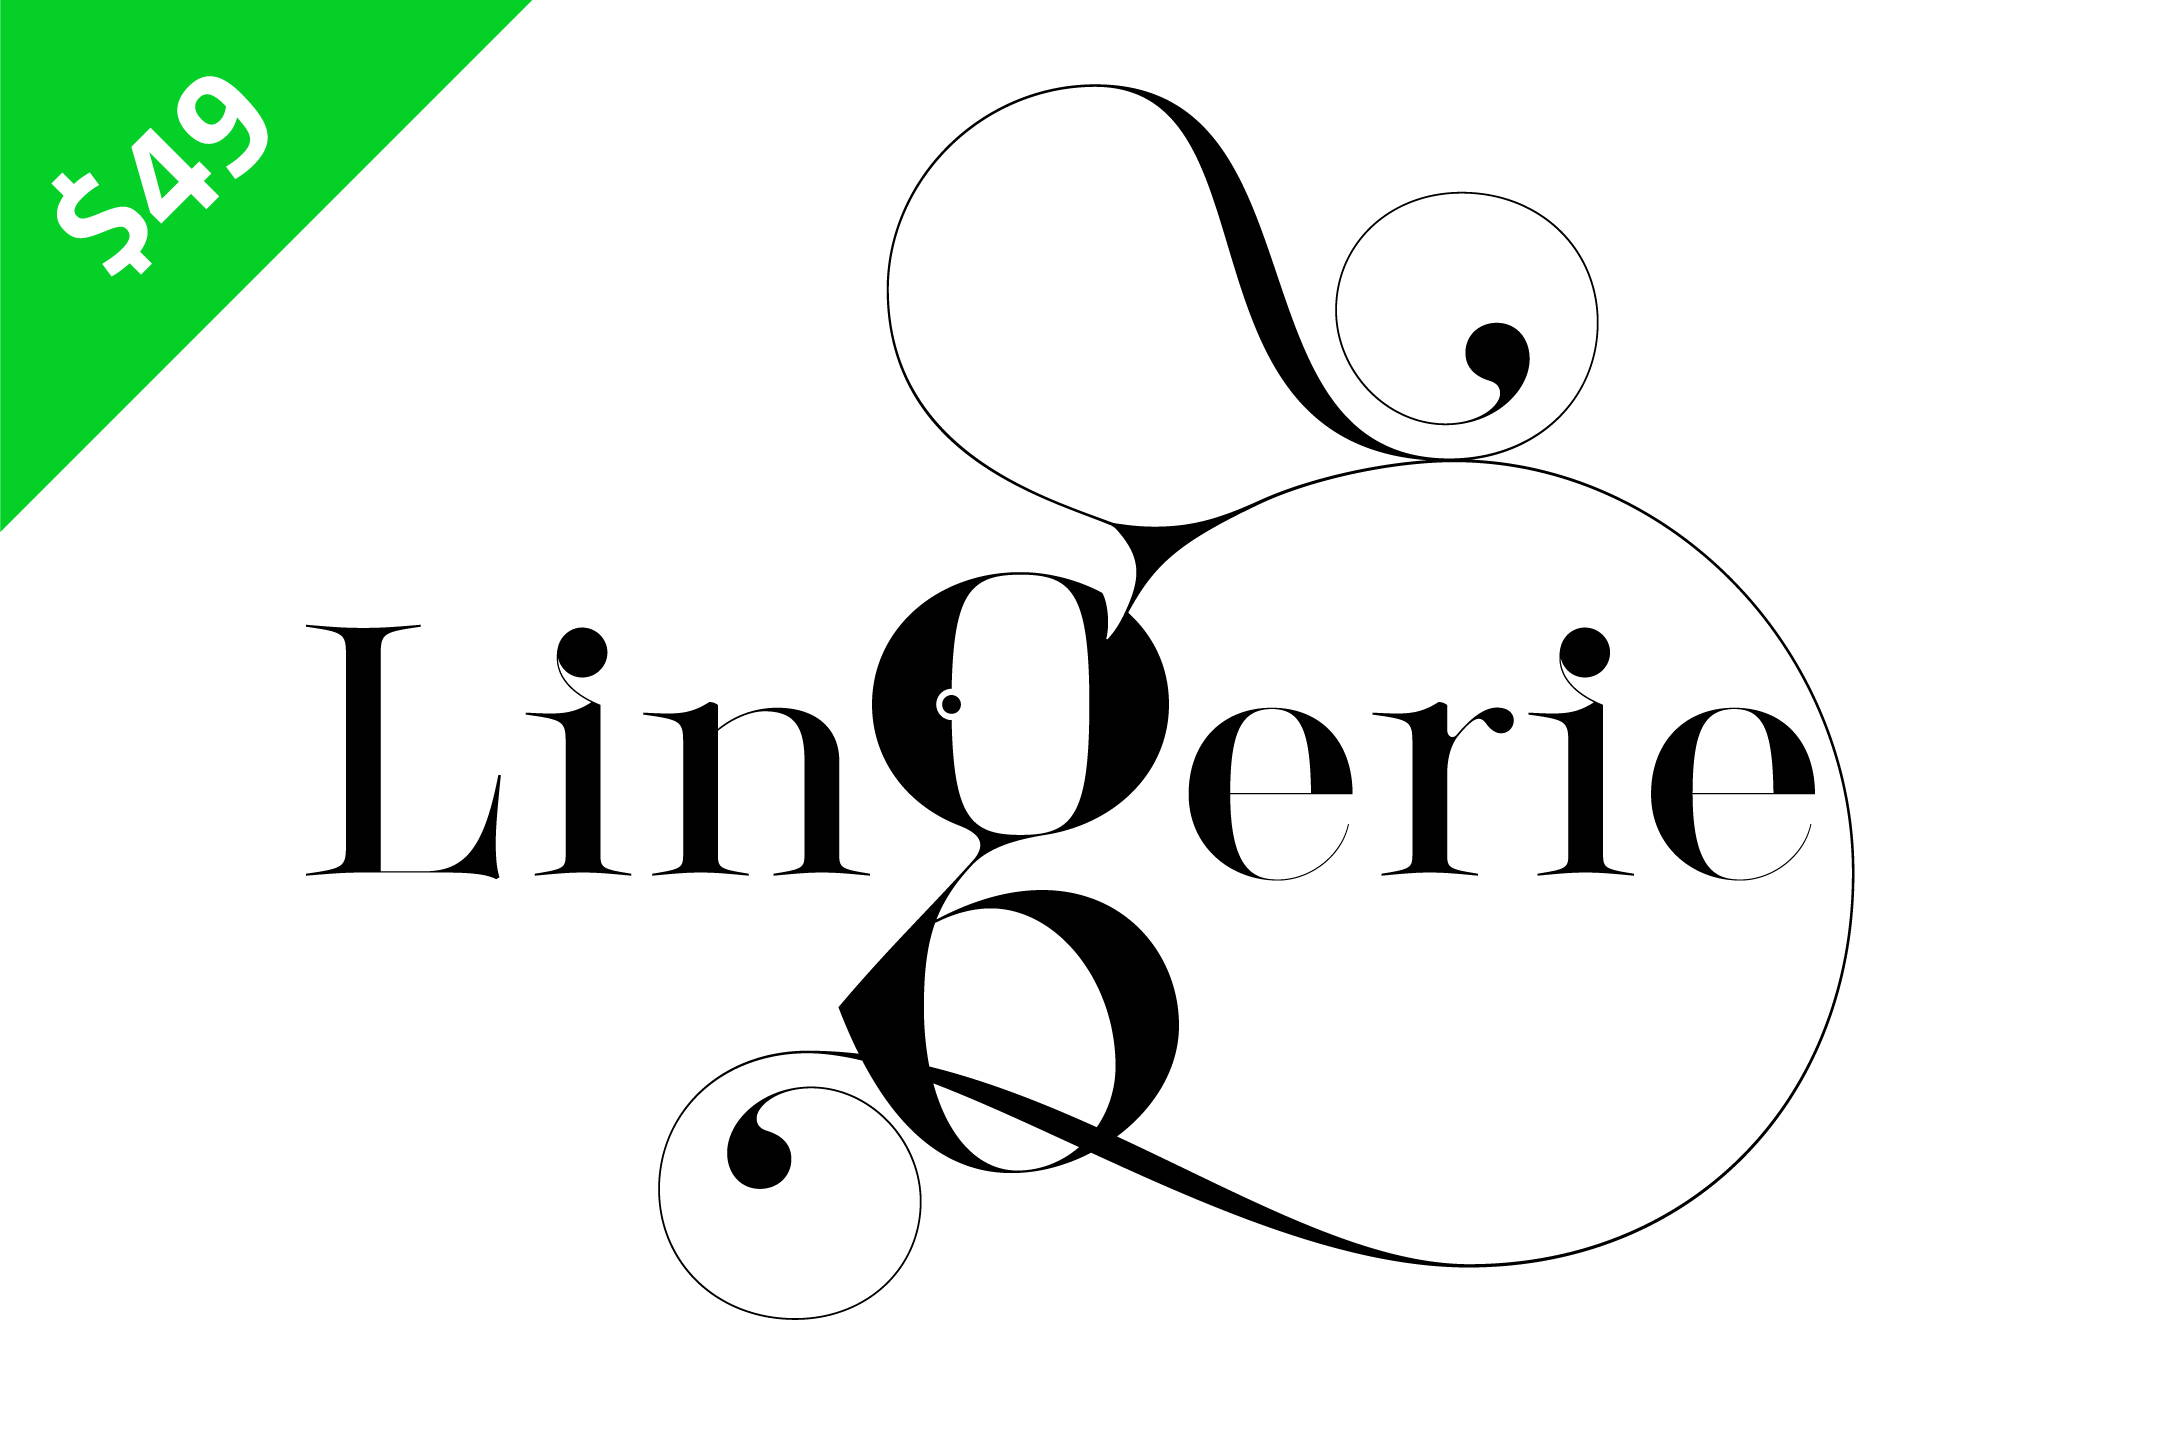 Lingerie Typeface - The most advanced typeface for Fashion and Luxury